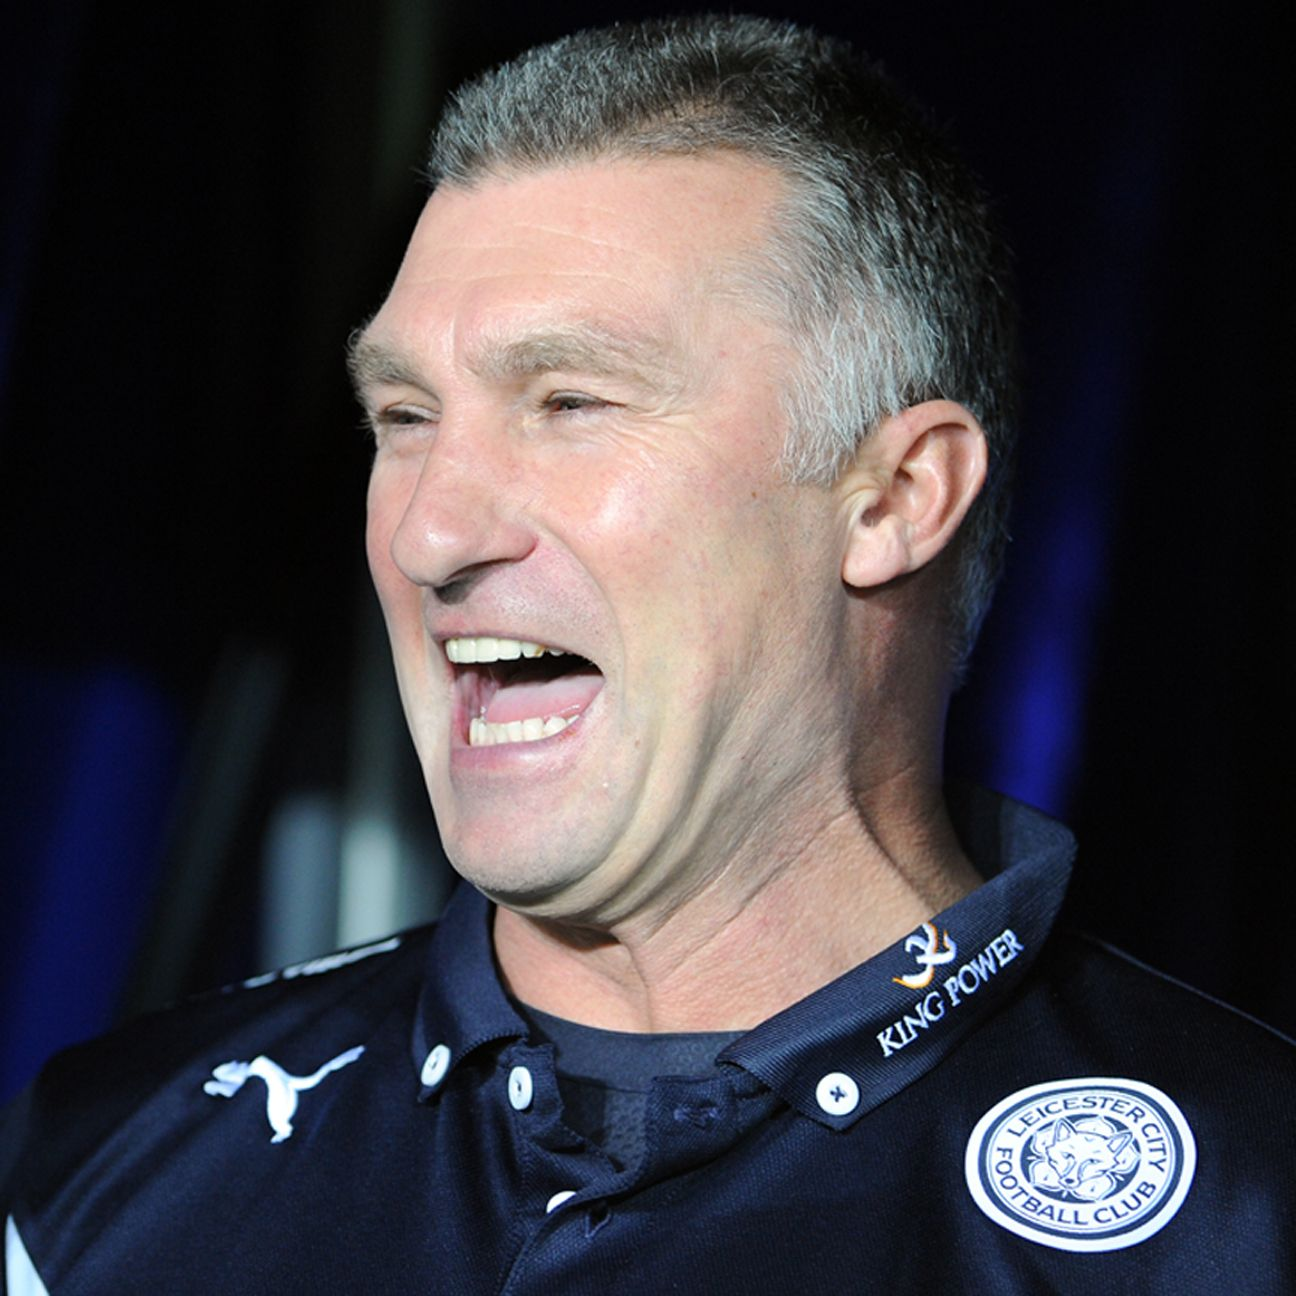 Just three months ago Leicester City was bound for relegation, until manager Nigel Pearson orchestrated a turnaround for the ages.